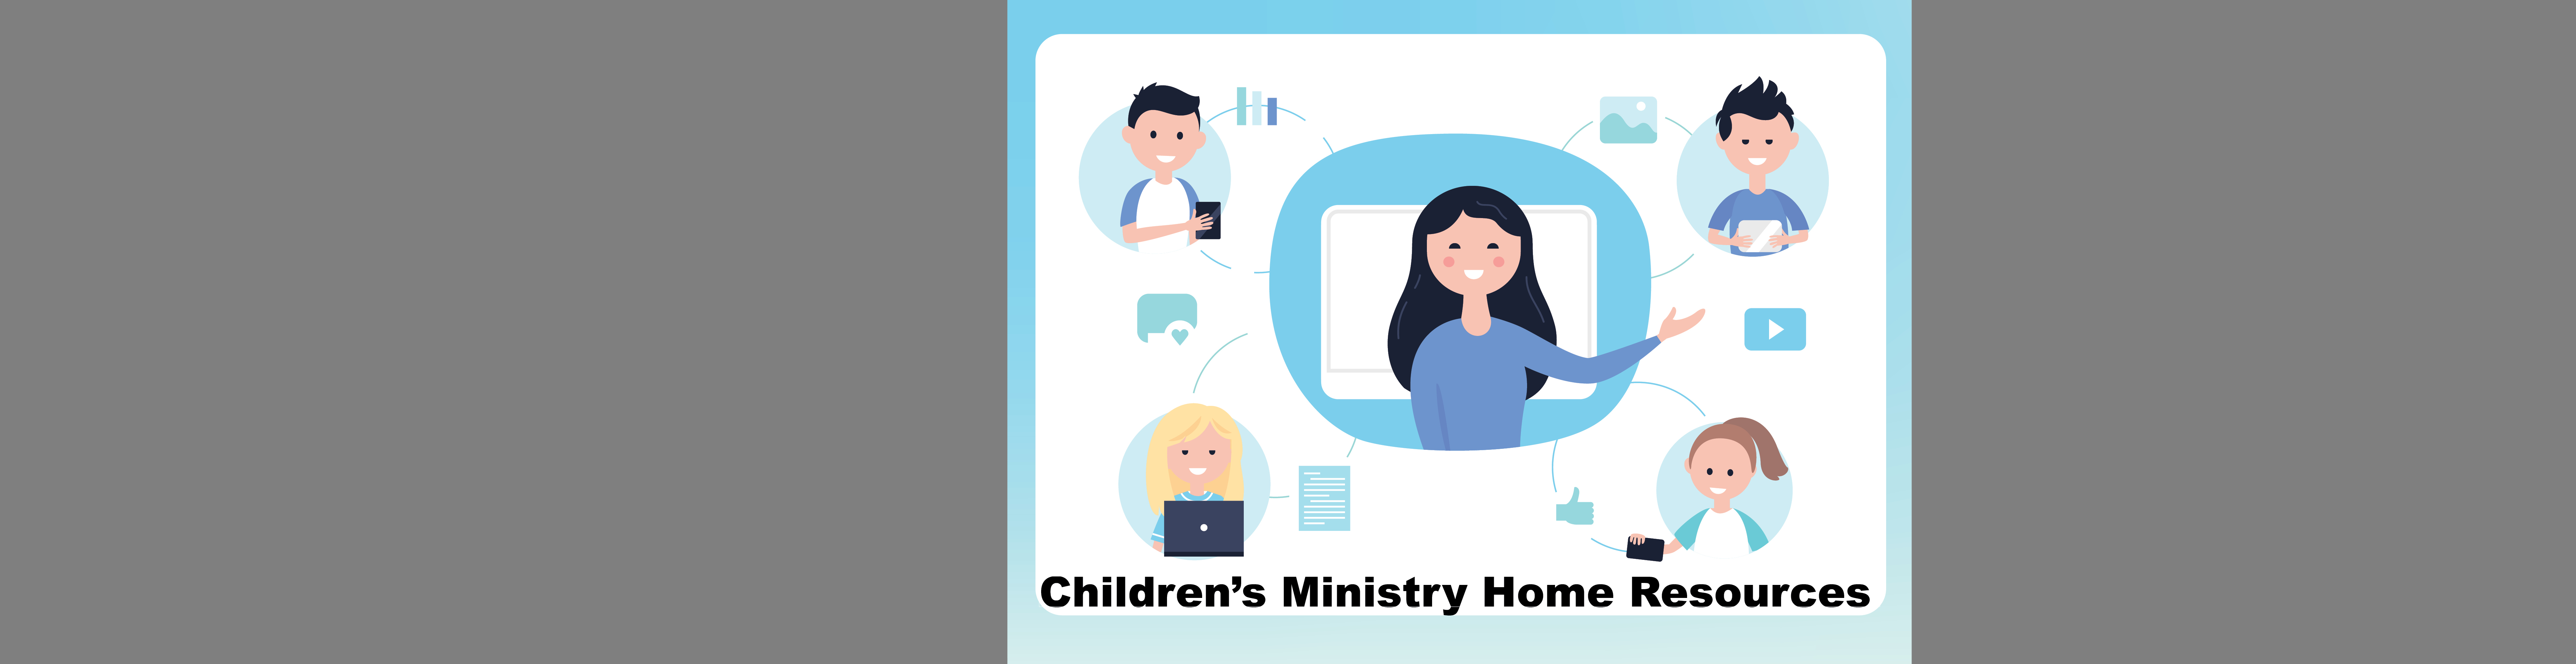 Chrildren's Ministy Web Banner